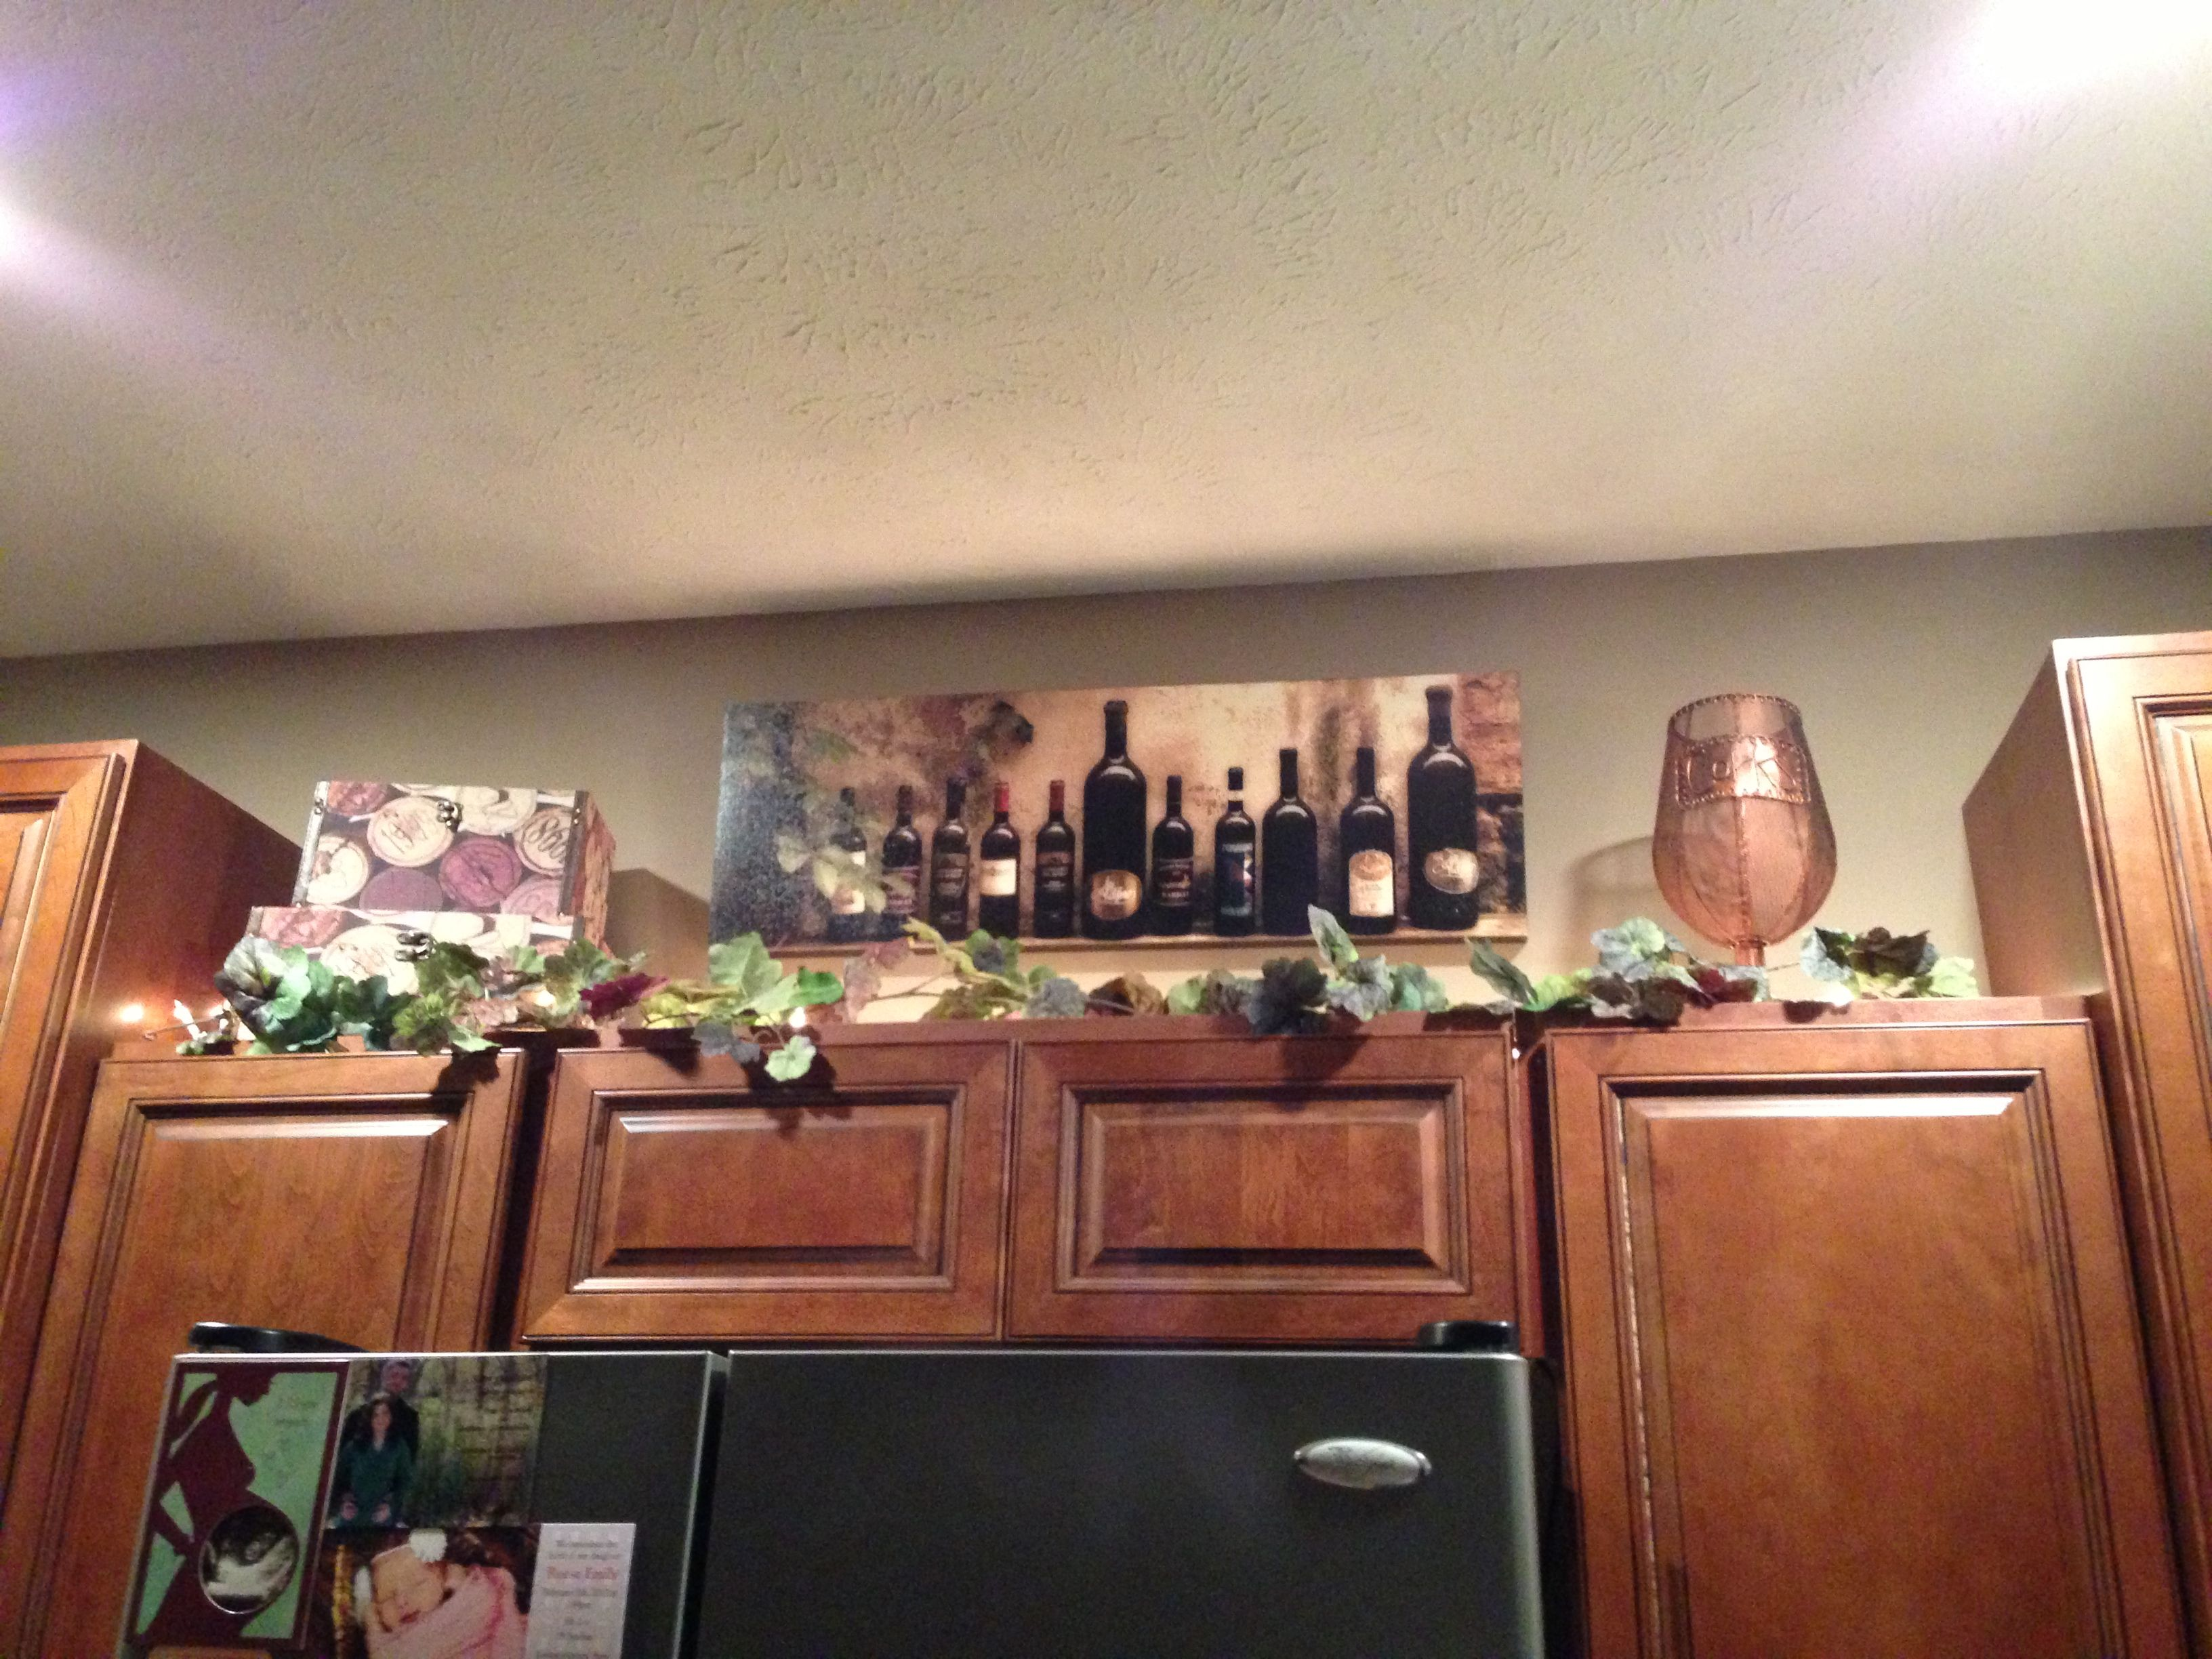 Wine kitchen cabinet decorations in 2019 | Kitchen decor ... on wine inspired kitchen decor, wine jewelry ideas, wine kitchen diy, wine wall decor, wine decorating ideas, kitchen decorating theme ideas, wine dining room ideas, wine kitchen decorations, wine decor for tuscan kitchen, wine art ideas, wine shelves ideas, wine kitchen decorating, wine themed kitchen ideas, wine kitchen quotes, wine and grapes kitchen decor, wine doors ideas, wine barware ideas, wine kitchen design, wine christmas ideas, family room with fireplace decorating ideas,